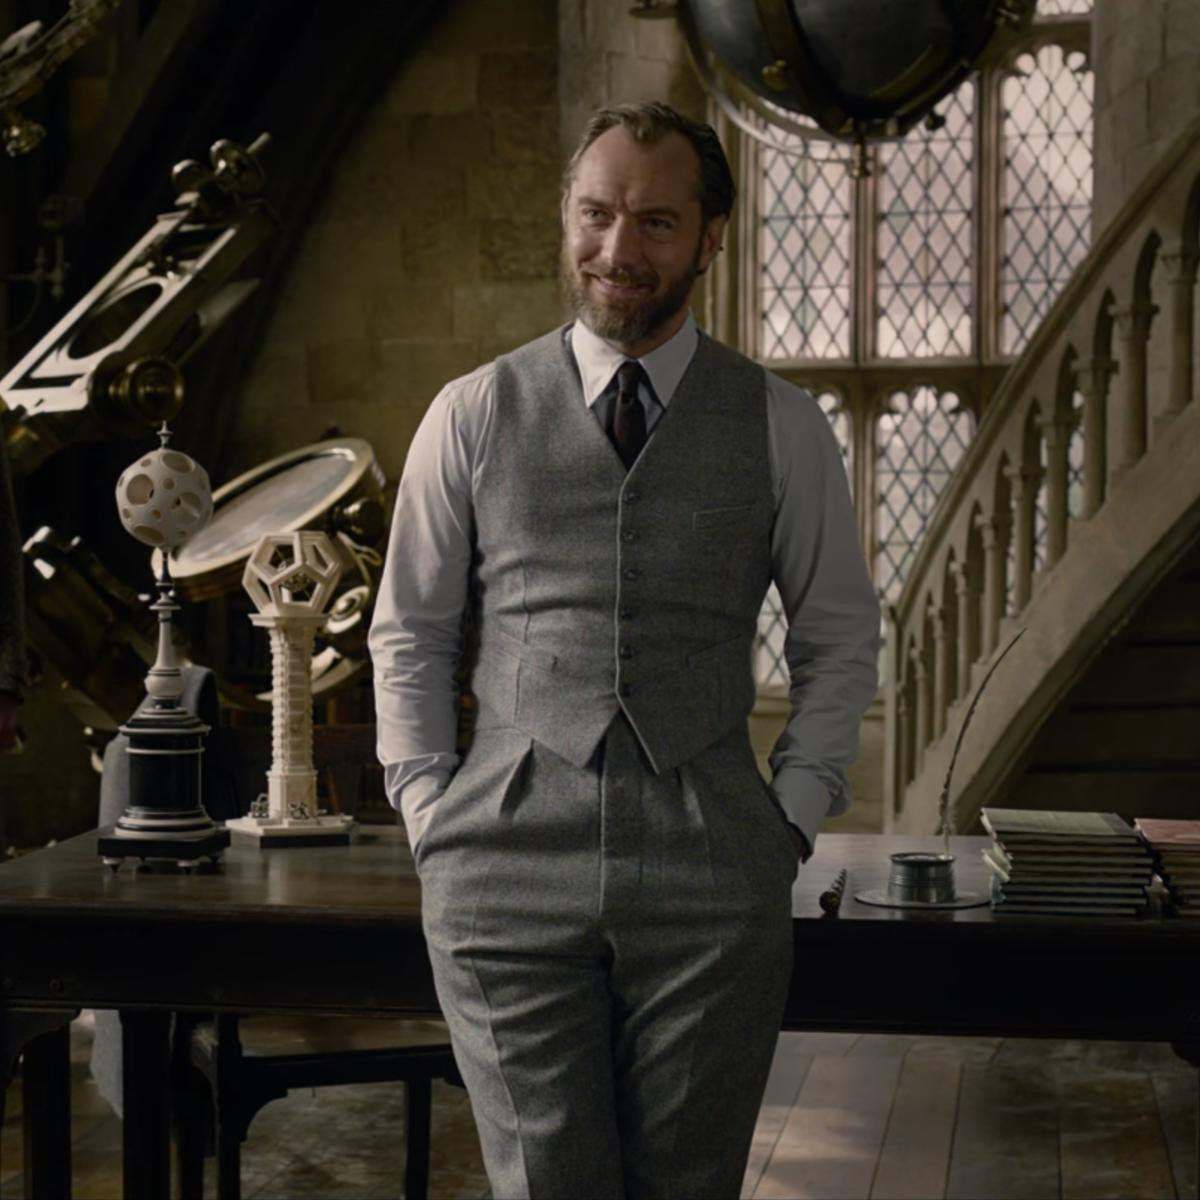 Take a magical look at some of the wands and costumes from Fantastic Beasts: The Crimes of Grindelwald